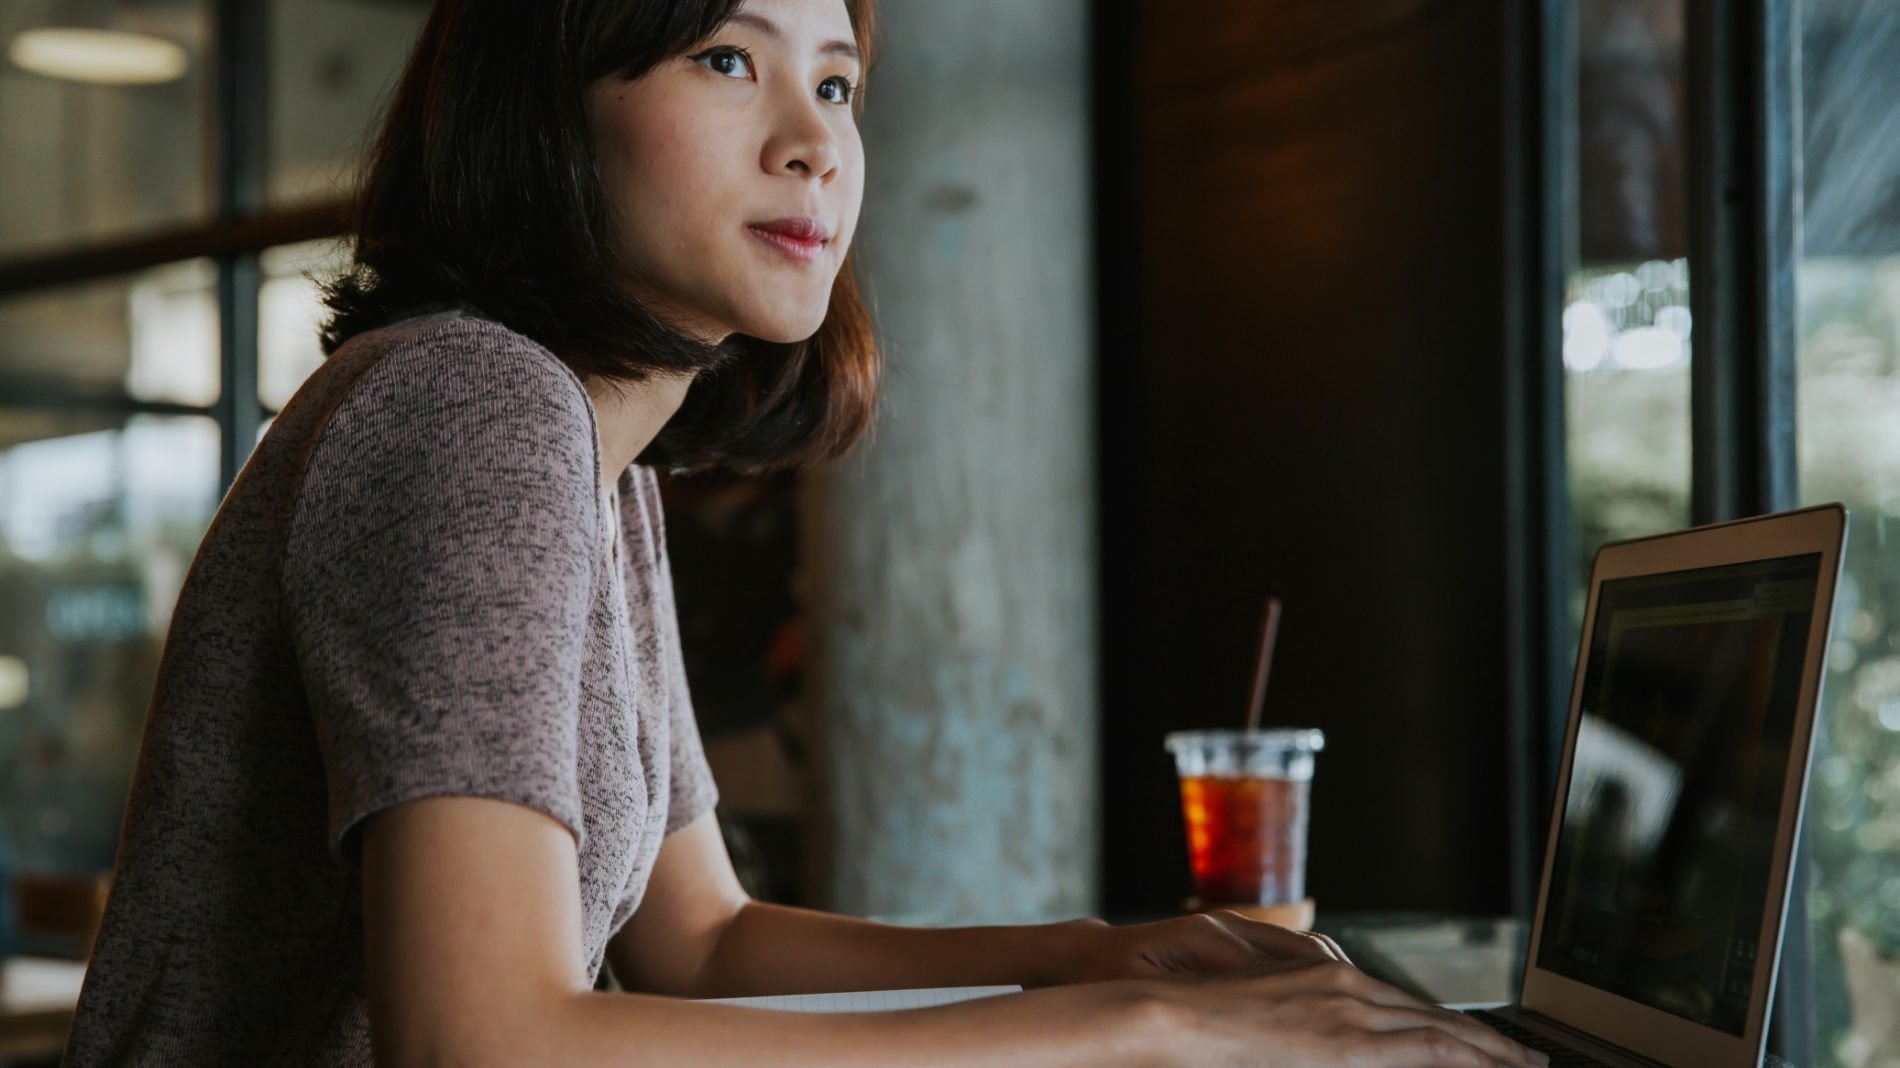 beautiful-young-asian-woman-working-at-a-coffee-shop-with-a-laptop-blogger-freelancer-cafe-laptop_t20_1QYGnO